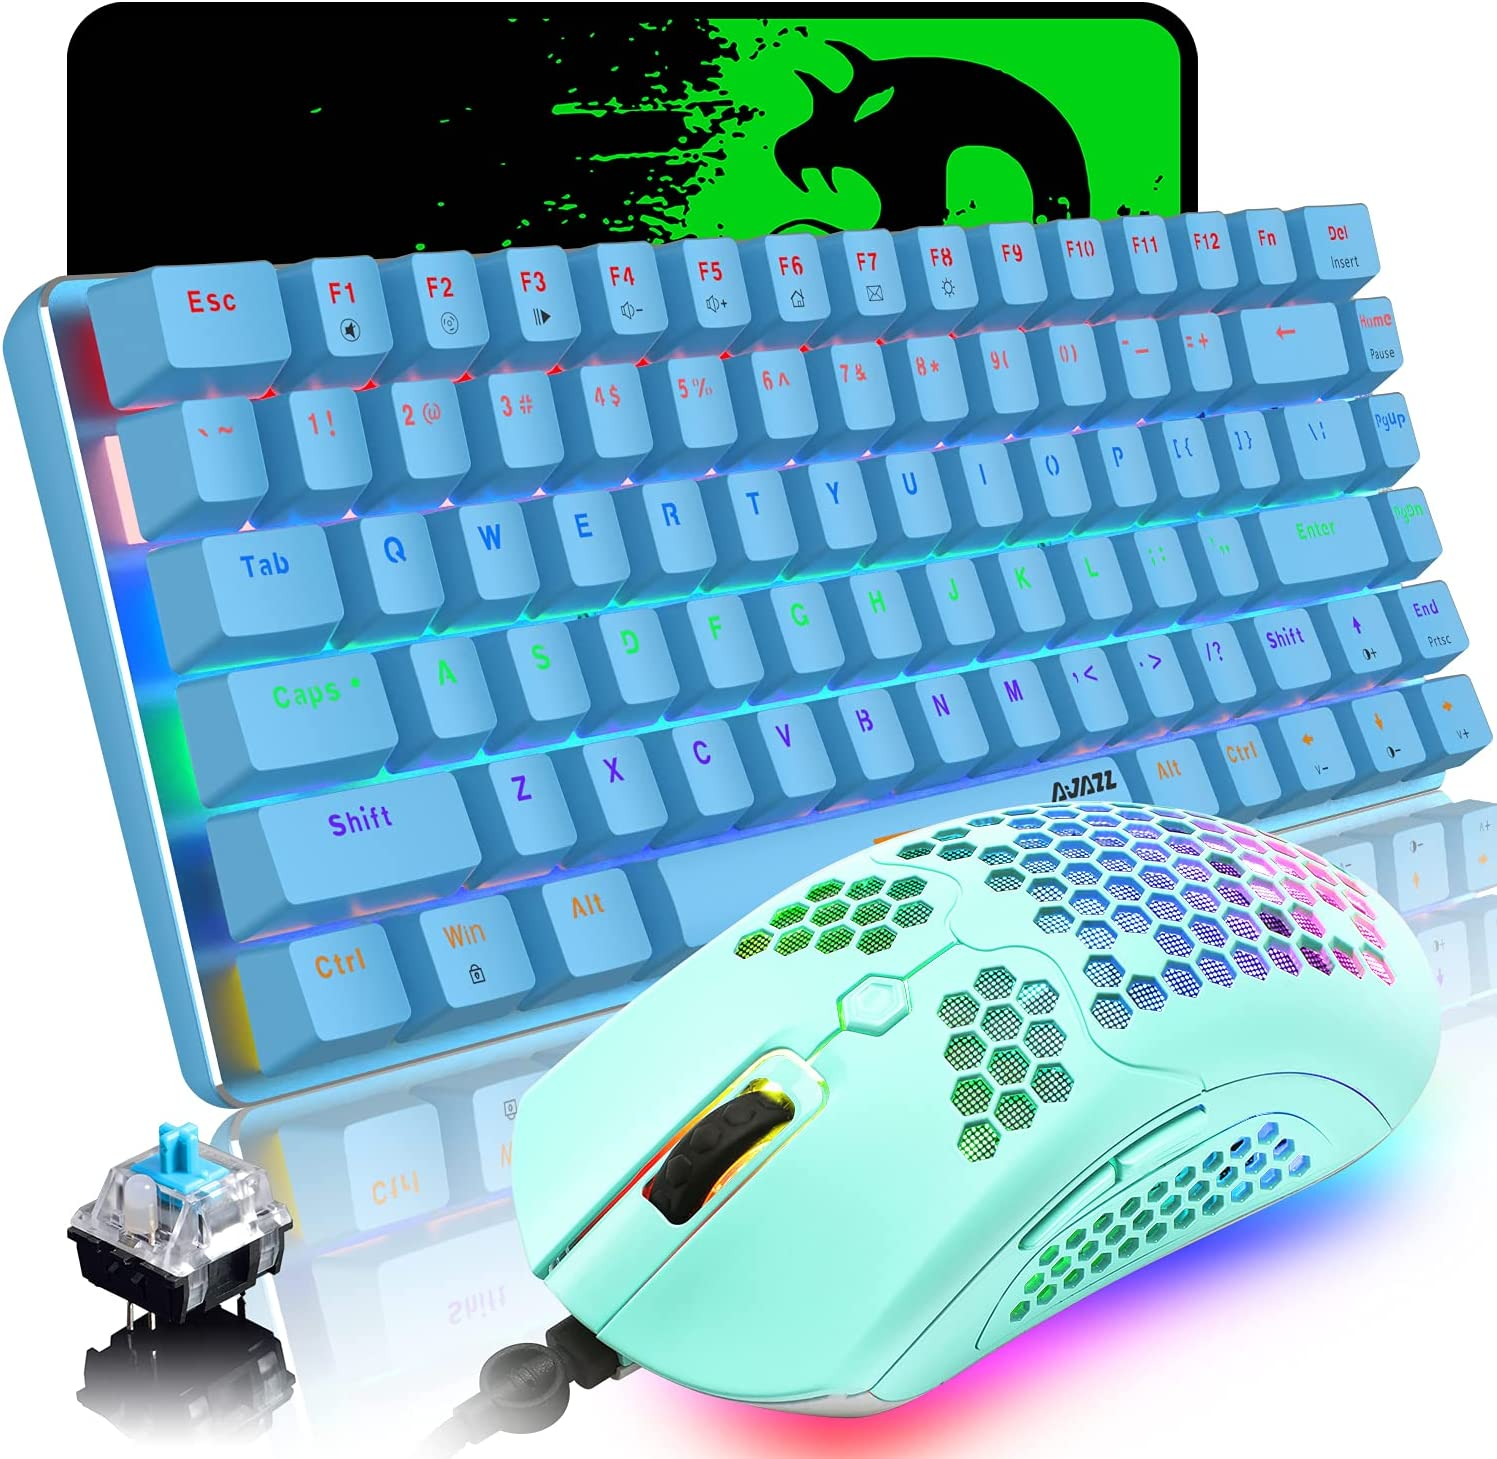 Wired Gaming Keyboard and Mouse,3 in 1 Gaming Set,Blue LED Backlit Wired Gaming Keyboard,RGB Backlit 12000 DPI Lightweight Gaming Mouse with Honeycomb Shell,Large Mouse Pad for PC Game(Blue)